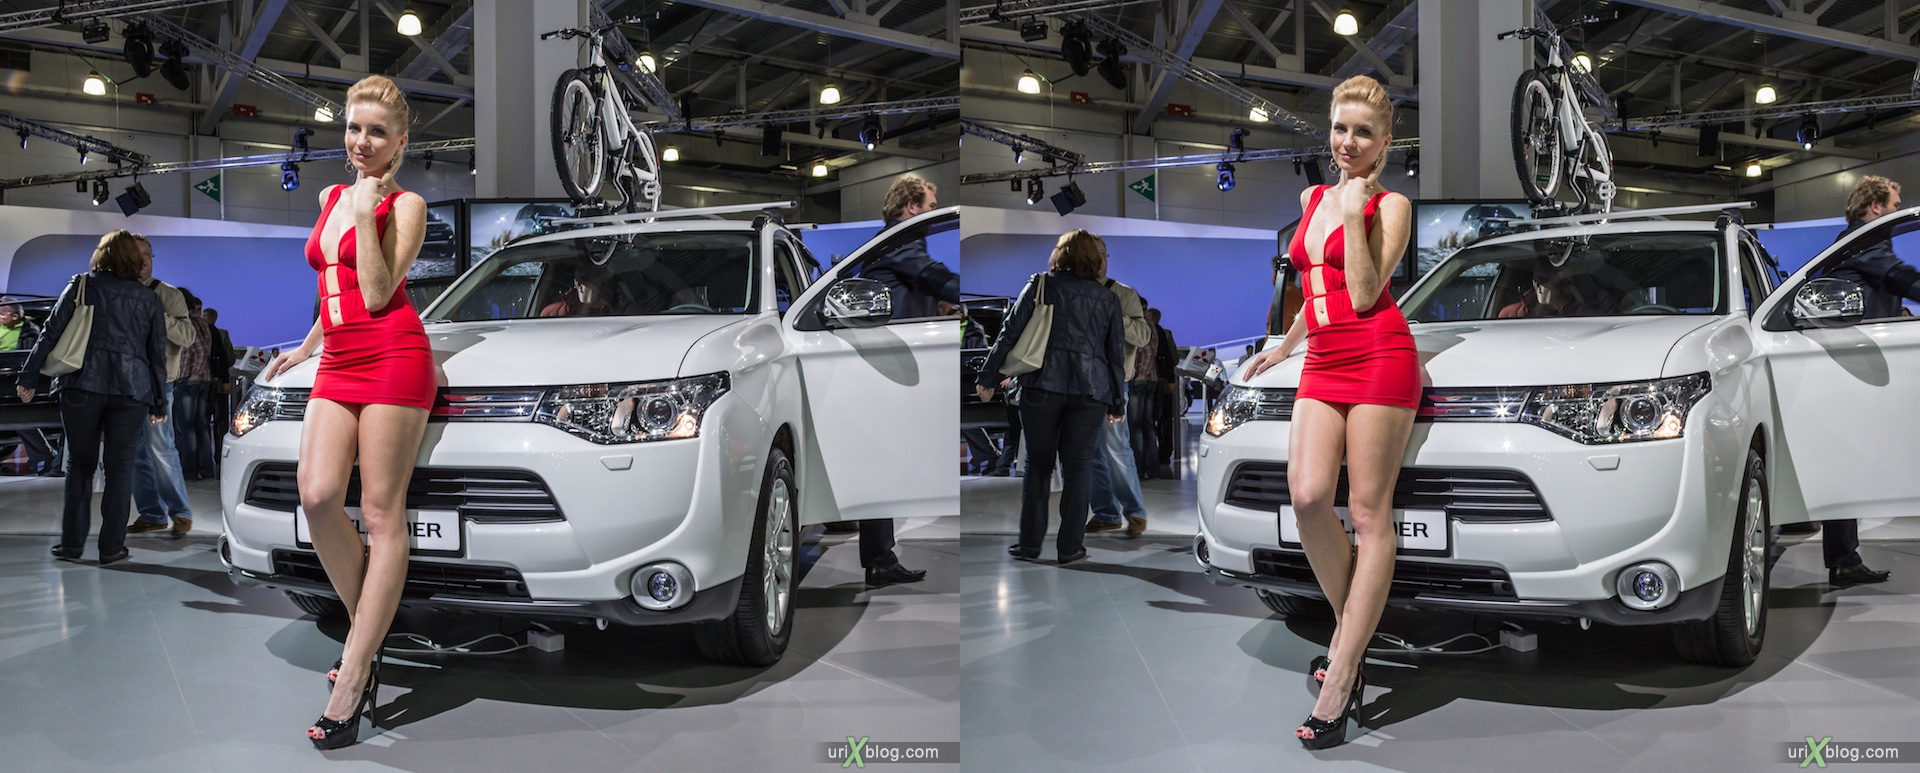 2012, Mitsubishi Outlander, girl, model, Moscow International Automobile Salon, auto show, 3D, stereo pair, cross-eyed, crossview